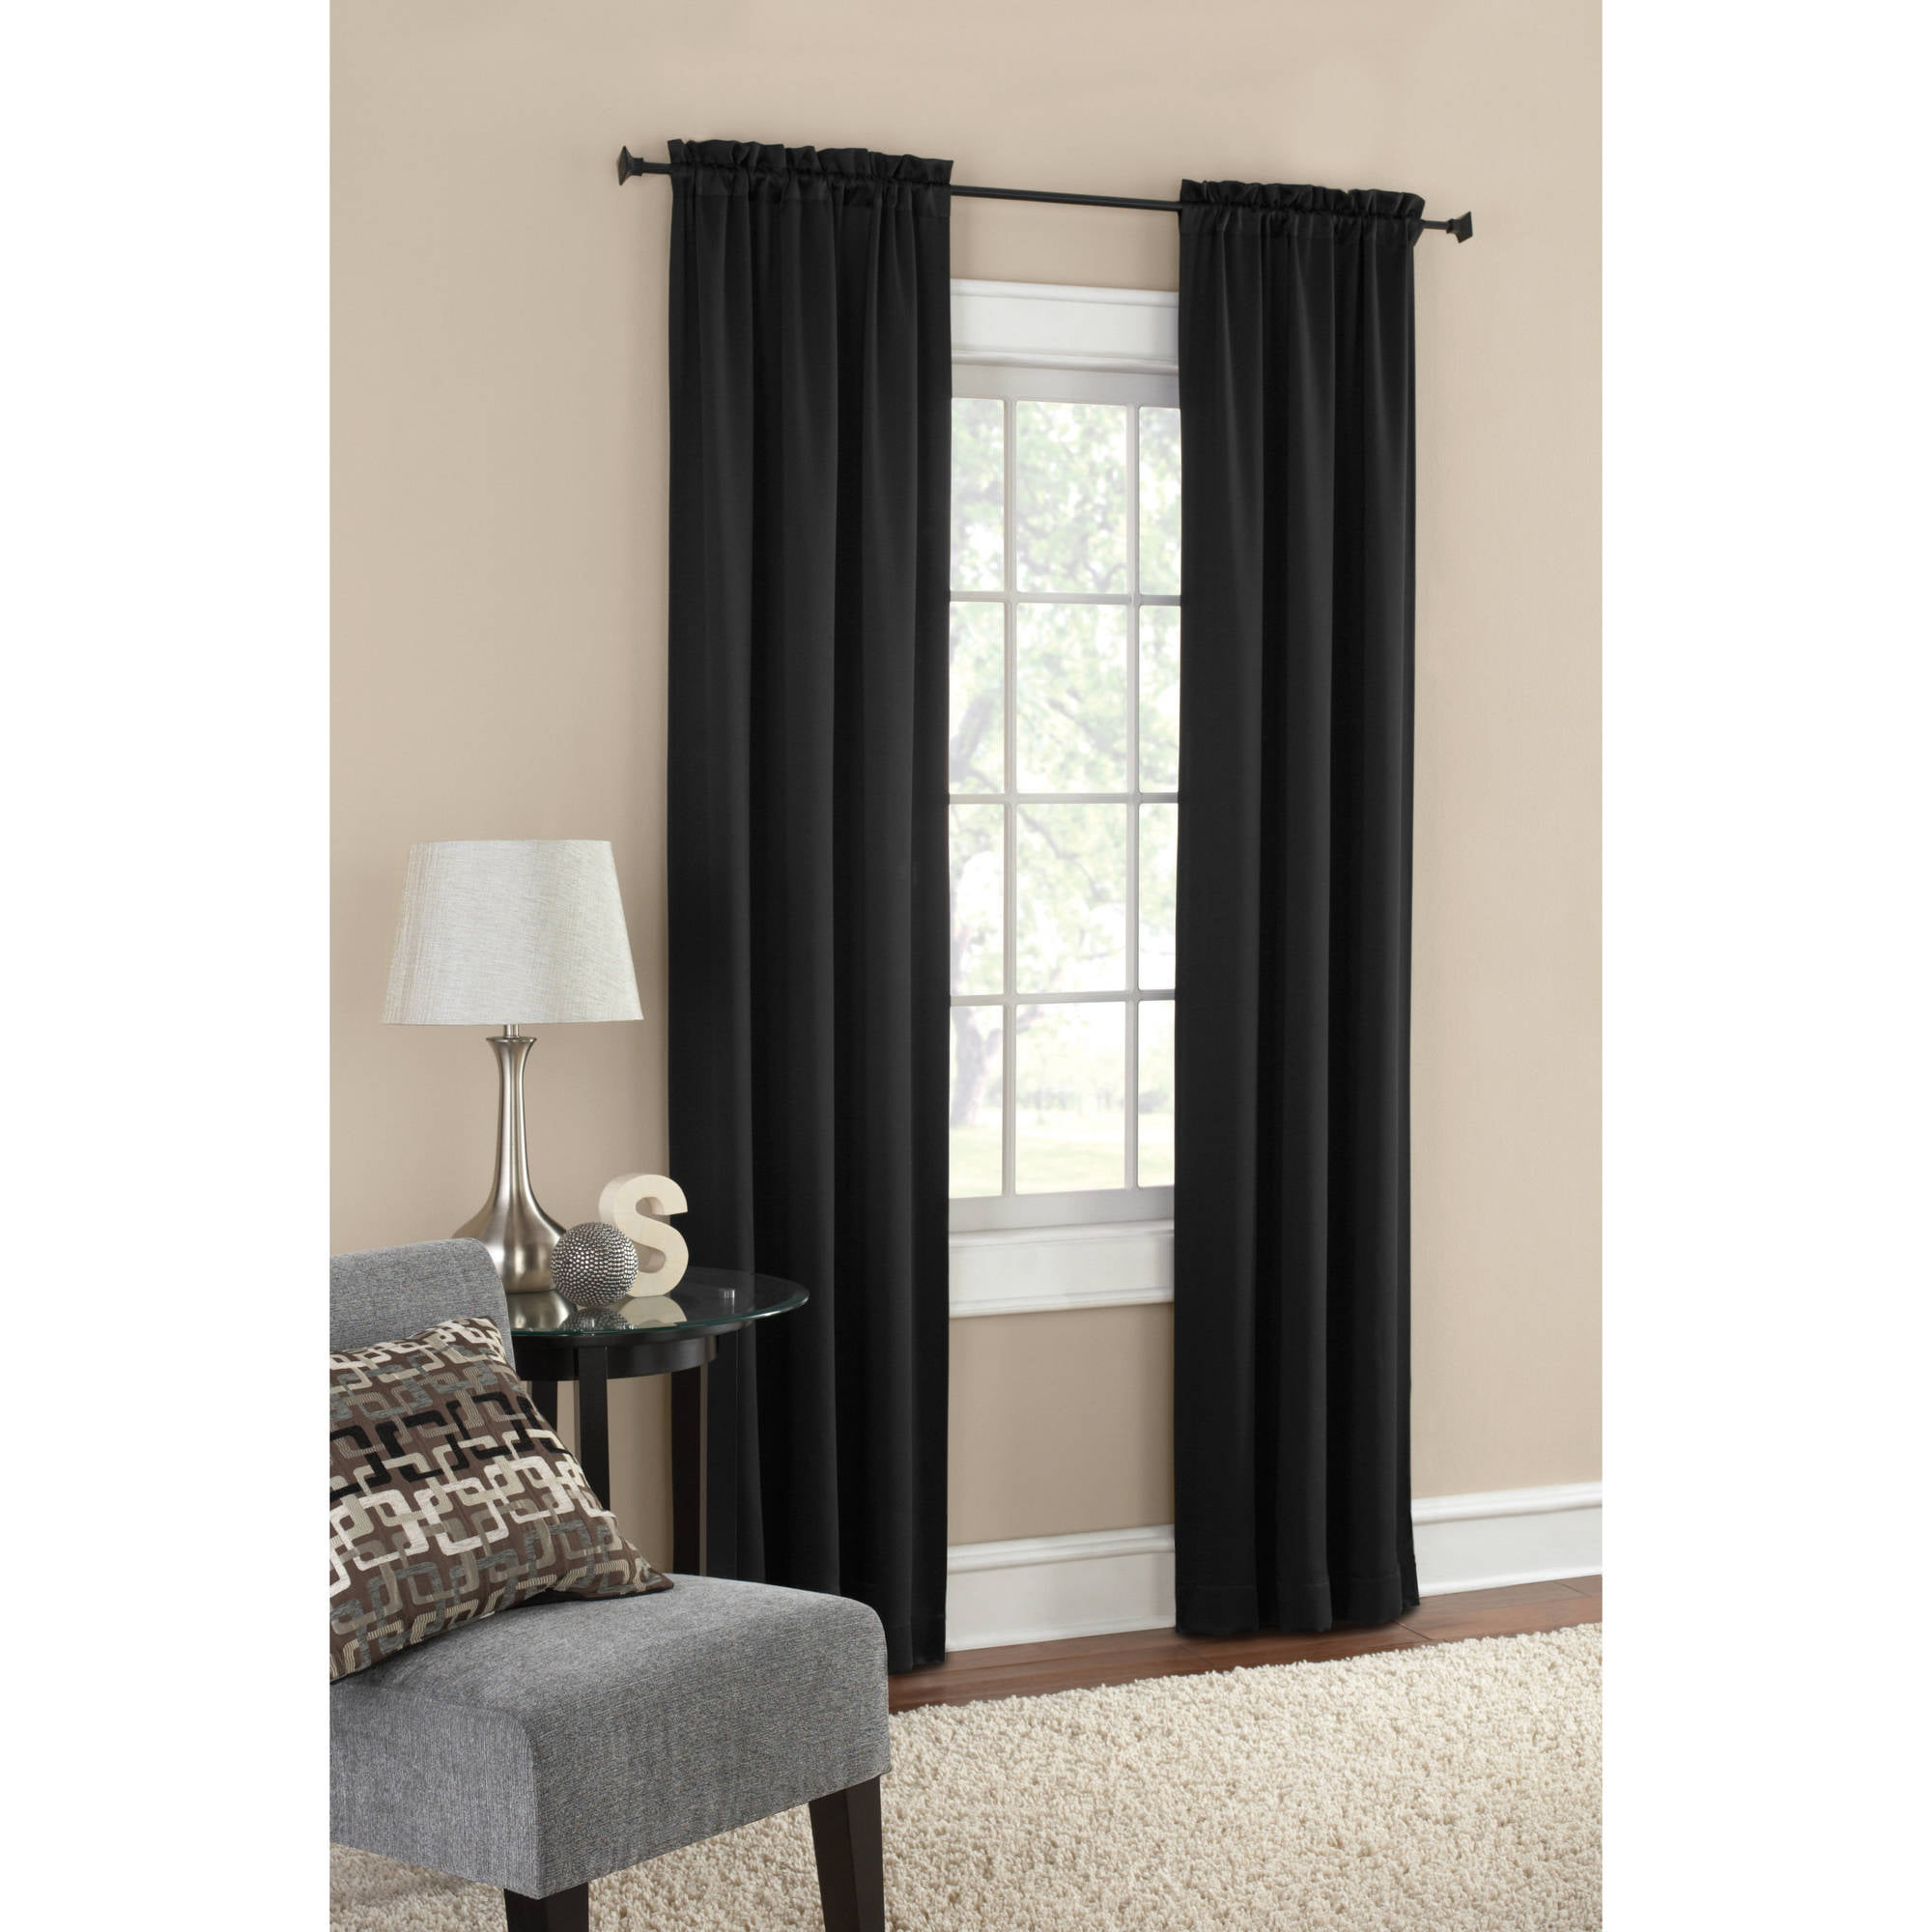 Navy blue bedroom curtains - Mainstays Thermal Solid Woven Window Panel Pair Multiple Colors